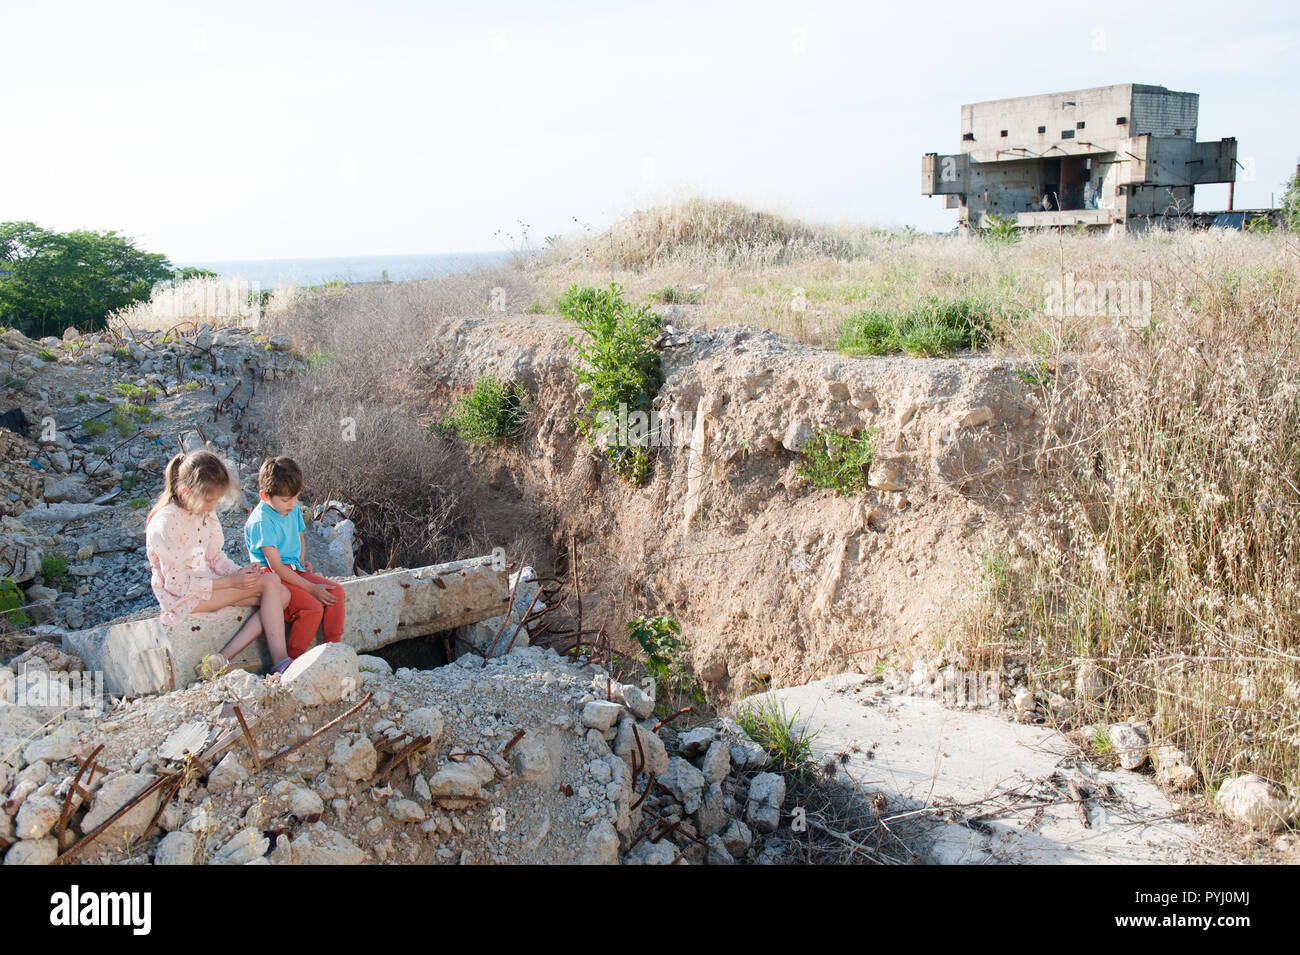 concept of two poor refugee children sitting on ruins of their house in war conflict zone - Stock Image